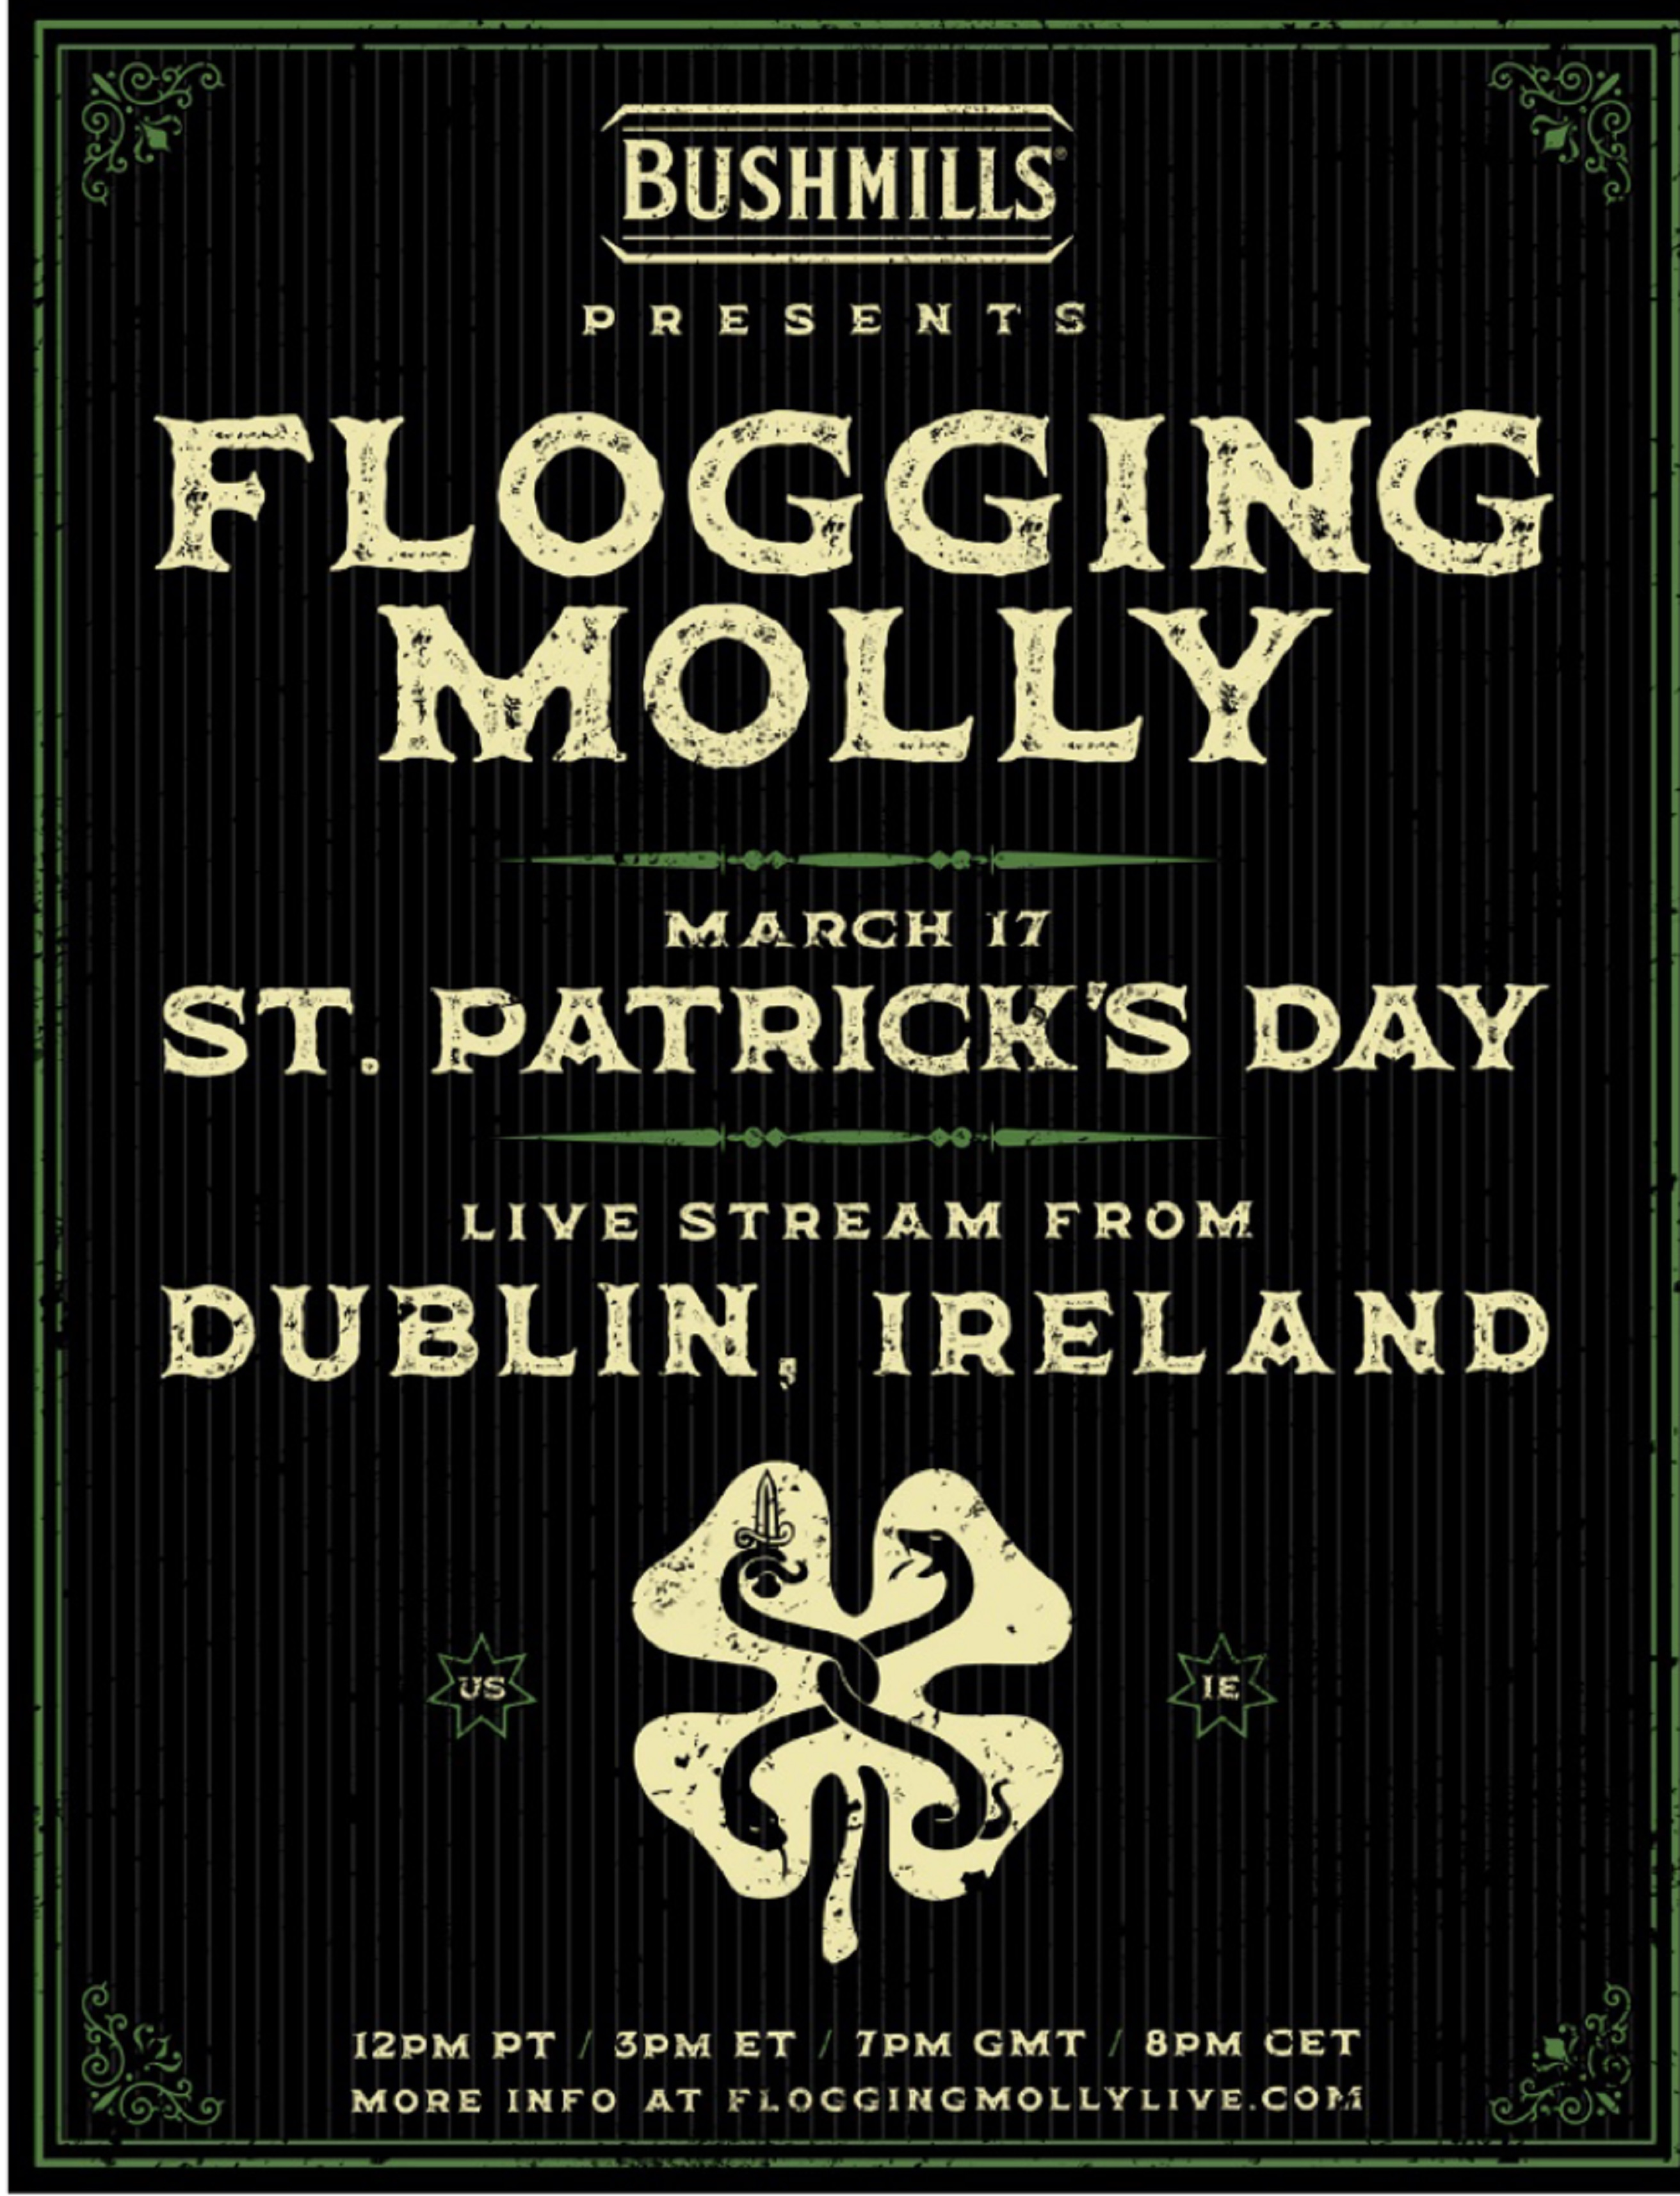 FLOGGING MOLLY LIVE FROM DUBLIN, IRELAND ON ST. PATRICK'S DAY!